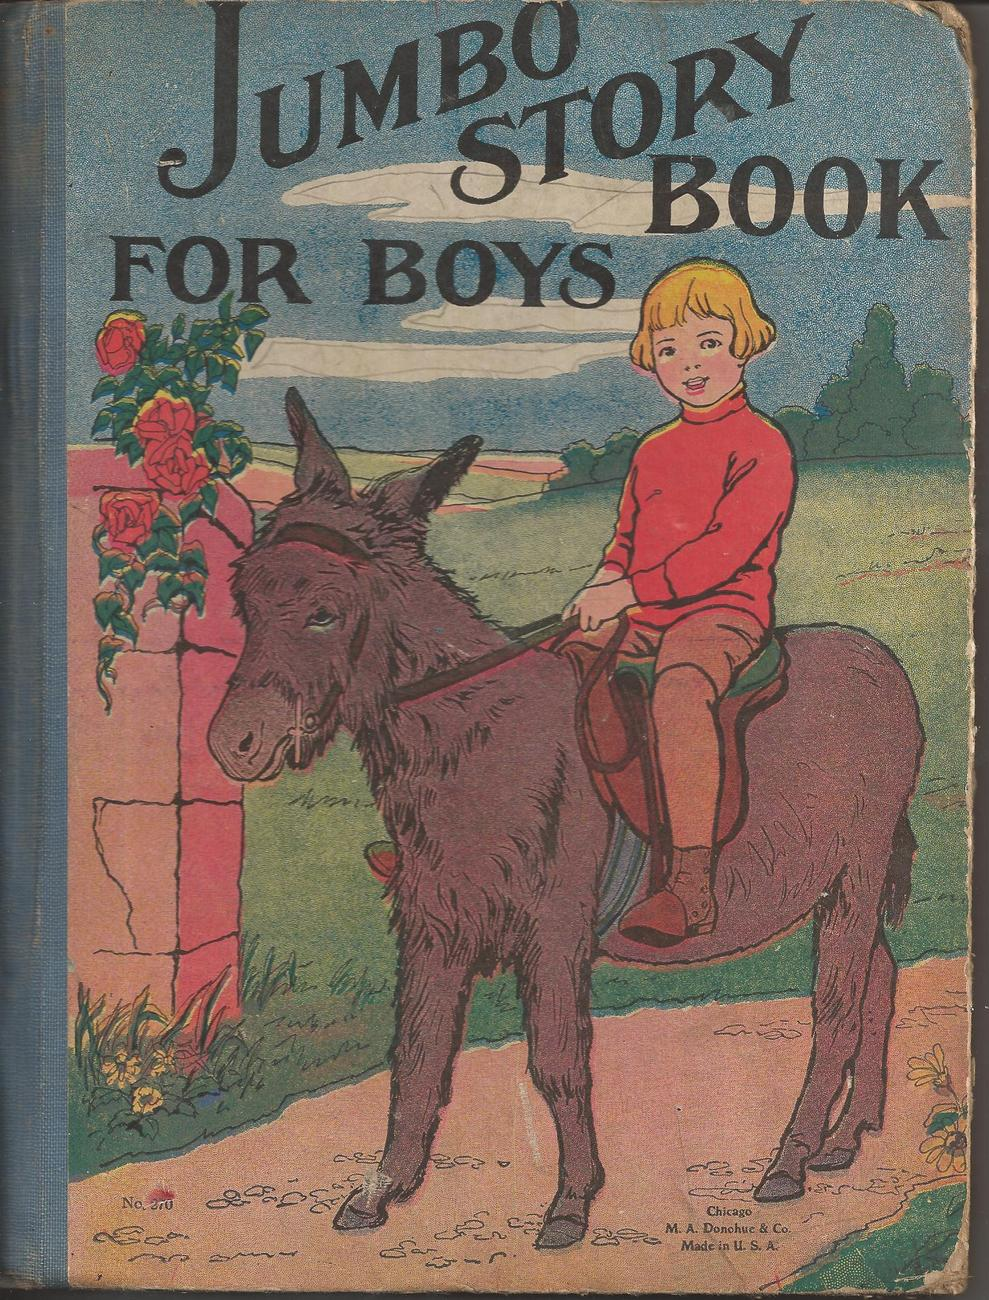 Jumbo_story_book_for_boys